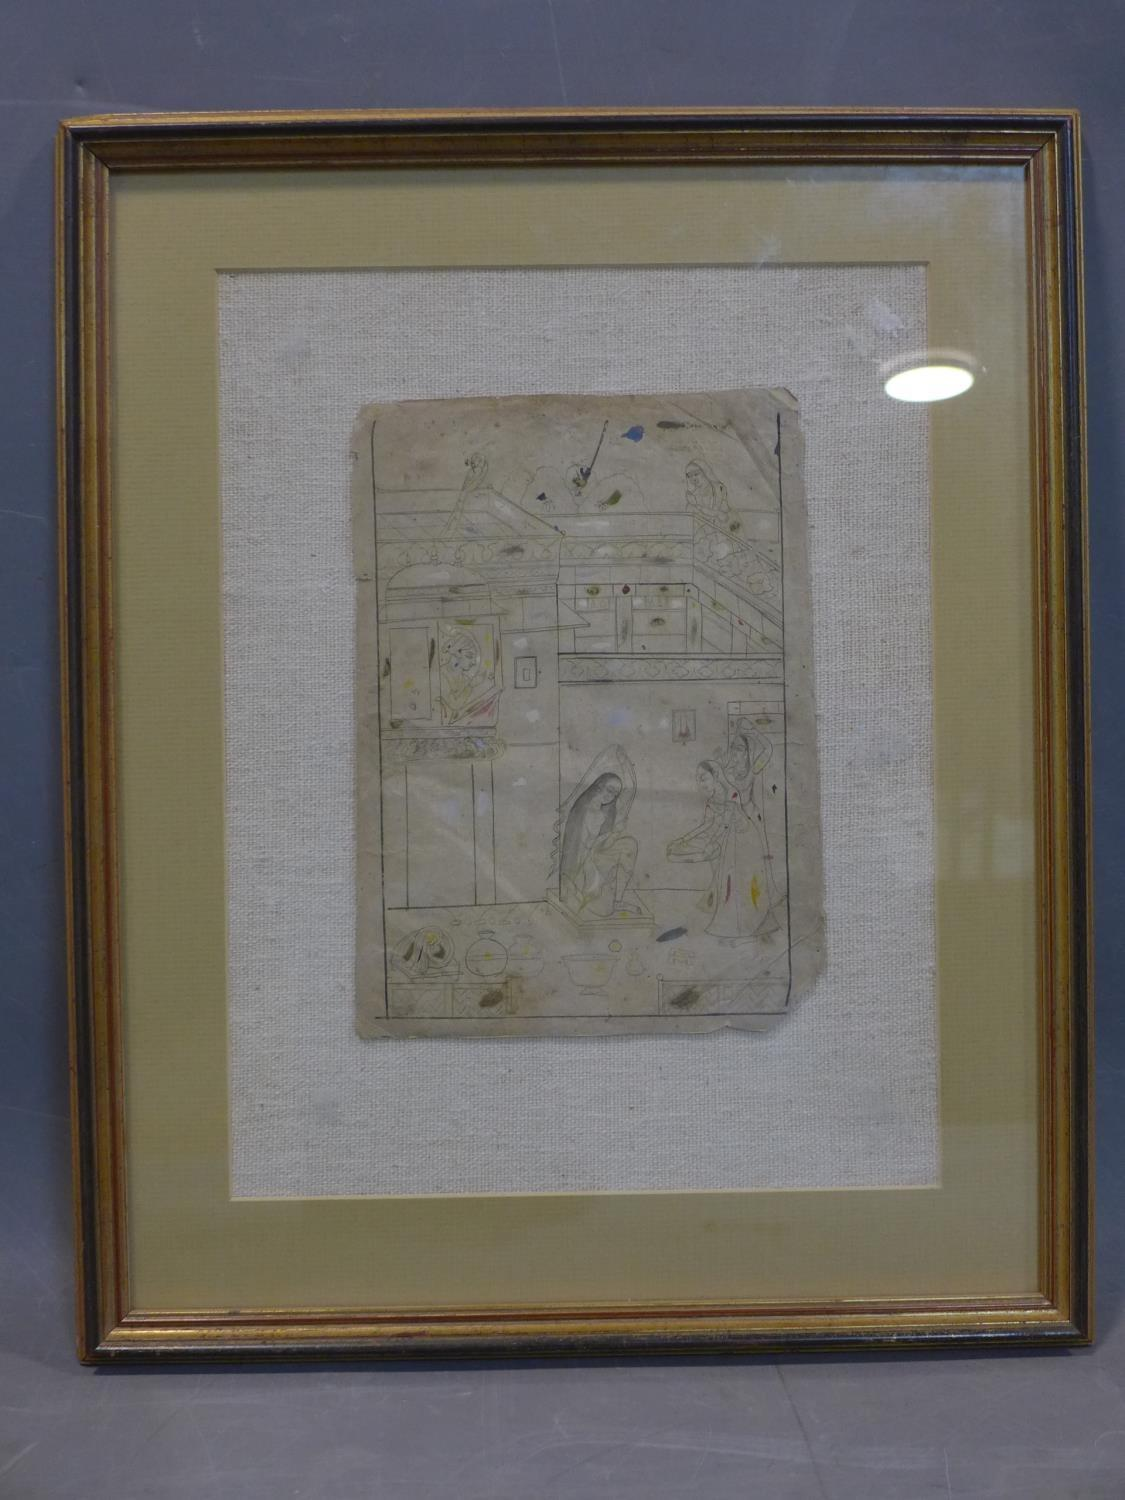 Lot 281 - A 19th century Mughal pencil and watercolour sketch of figures in a palace, with a lady dressing